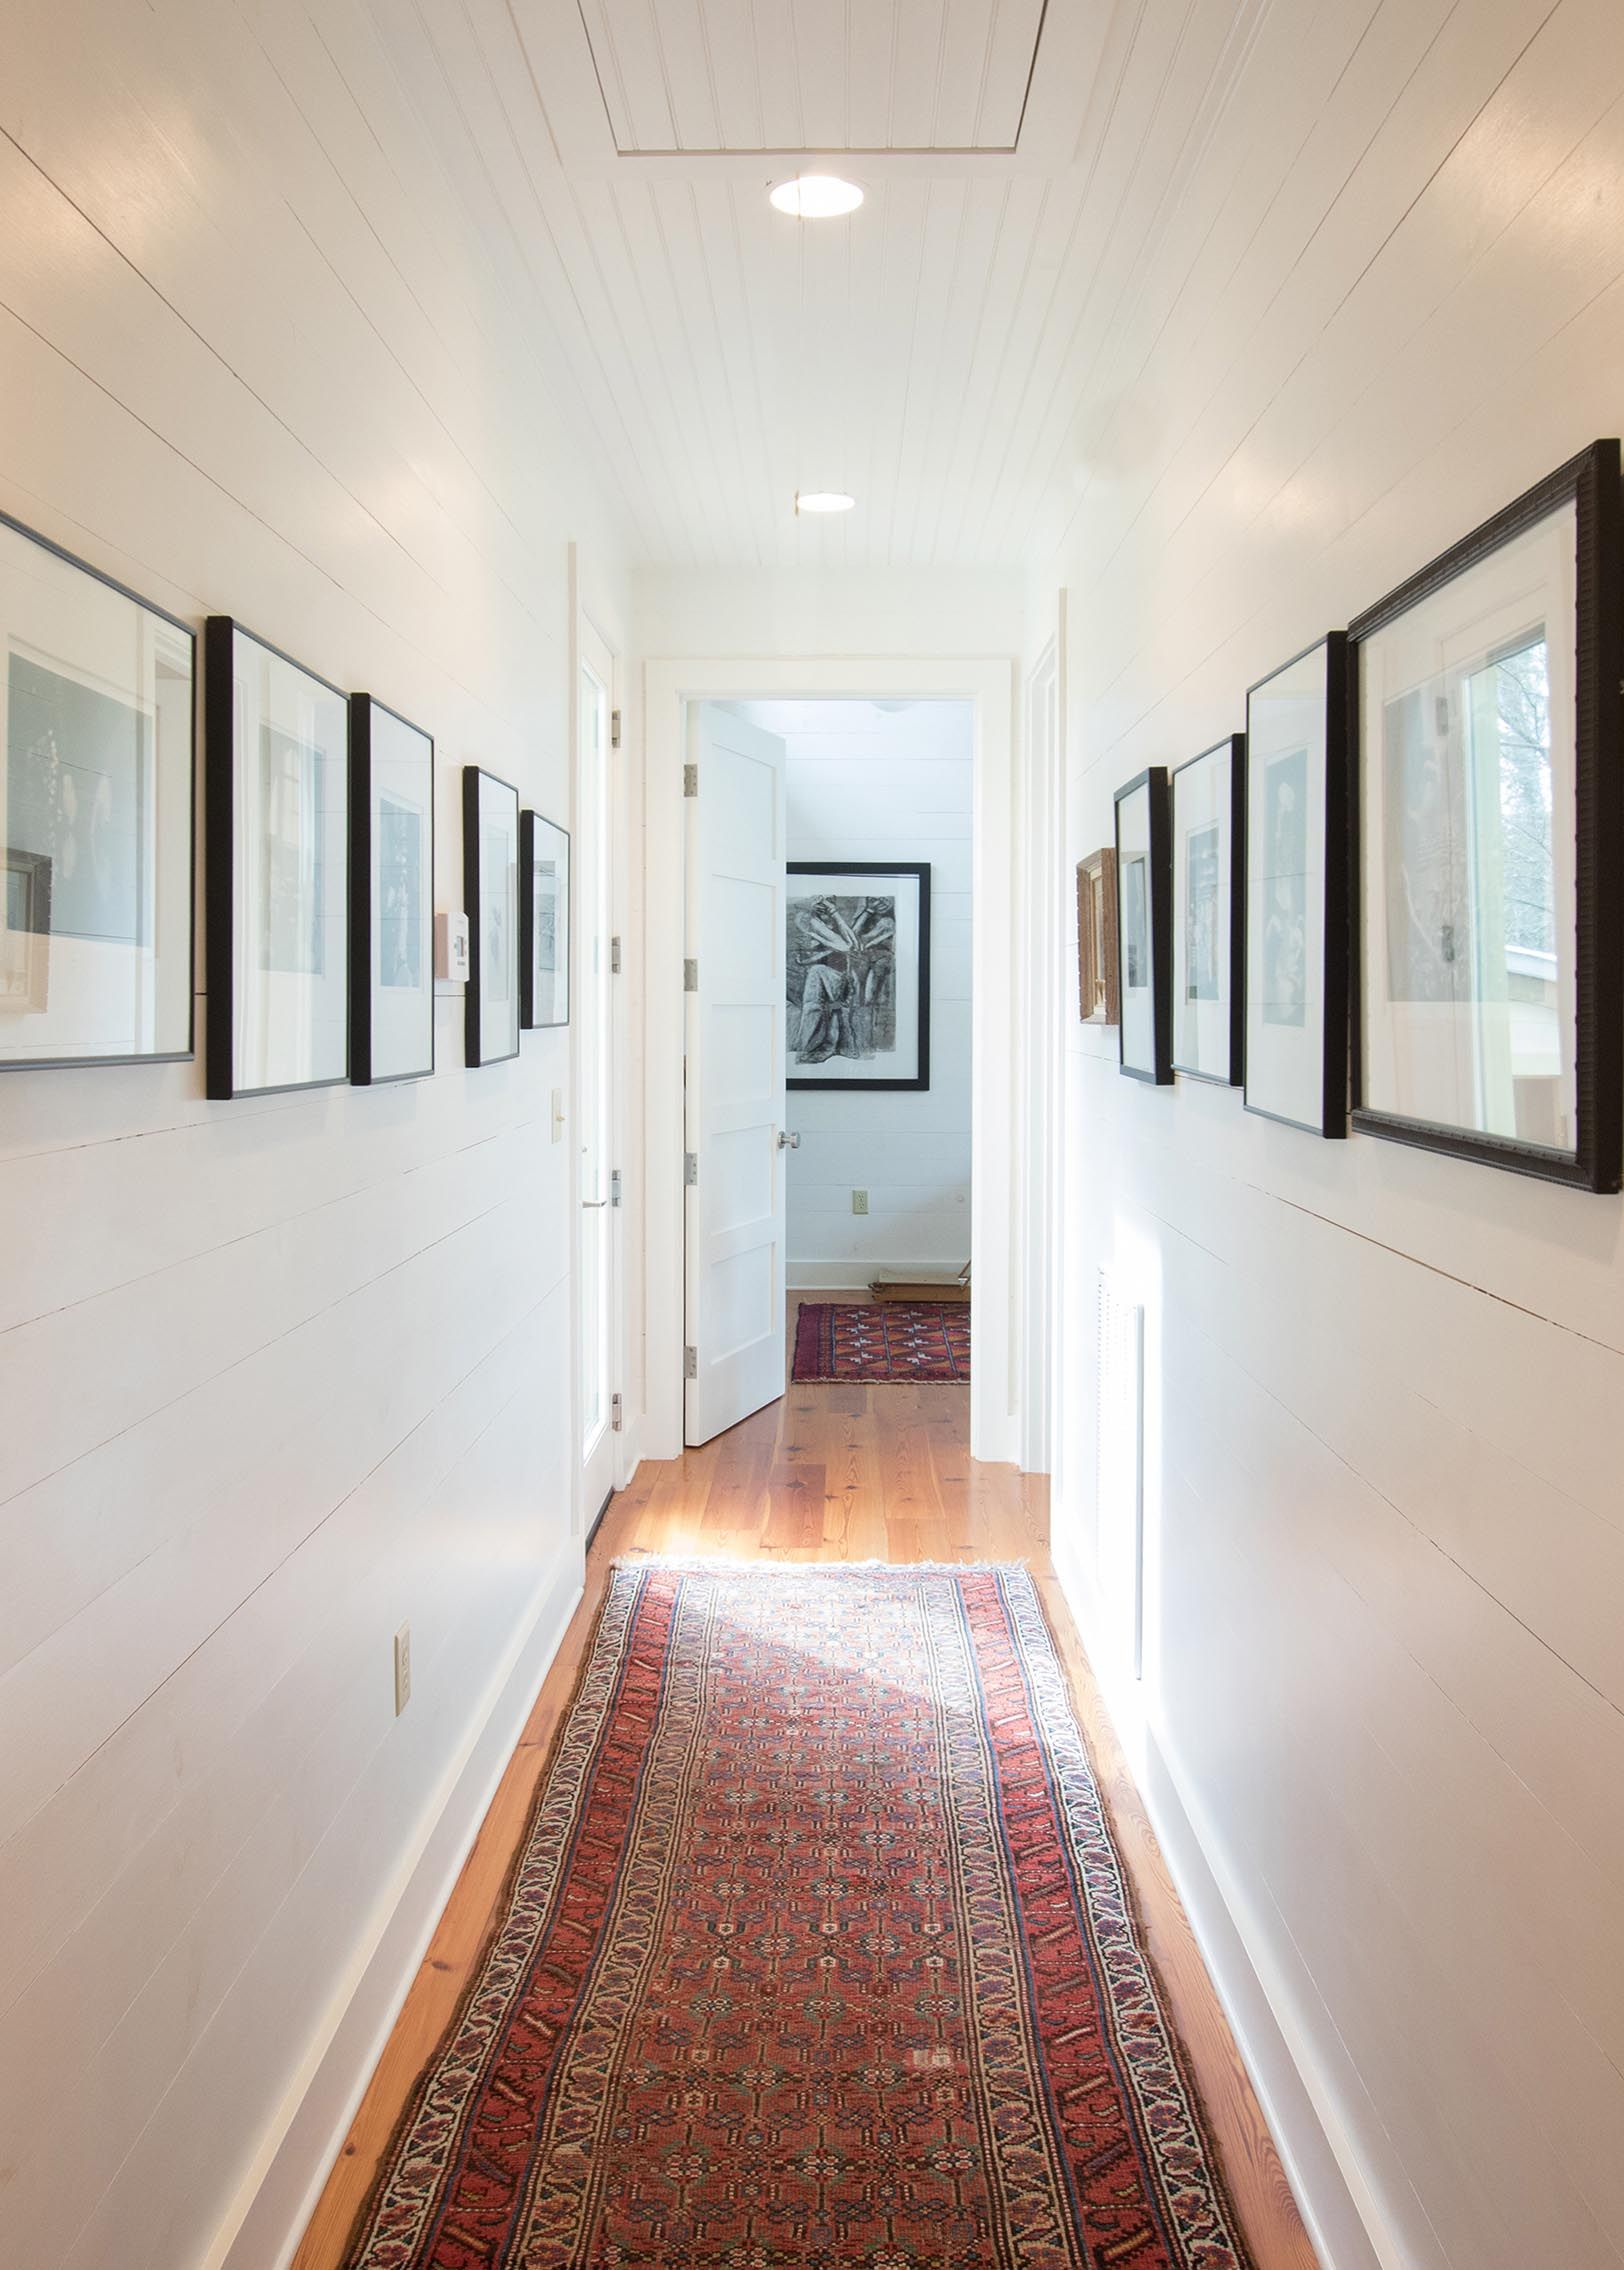 A Home in Rural Mississippi, Built Like An Art Gallery | photography ...